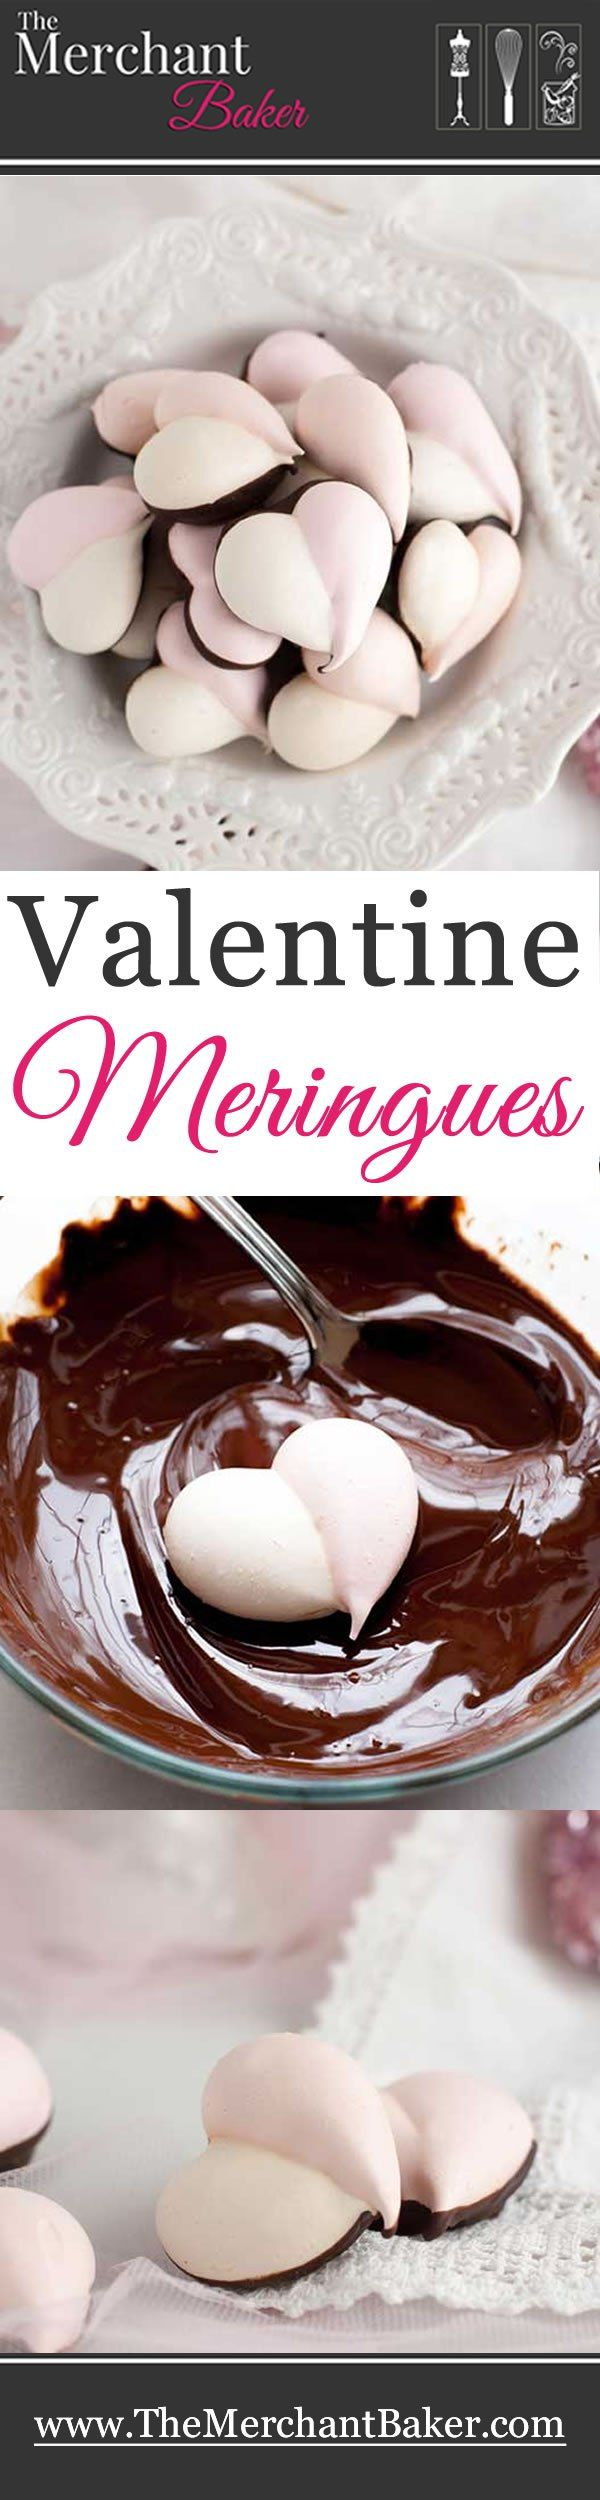 Valentine Meringues. Light as air, crispy meringues are dipped in deep dark chocolate for a less guilty, sweet little treat!